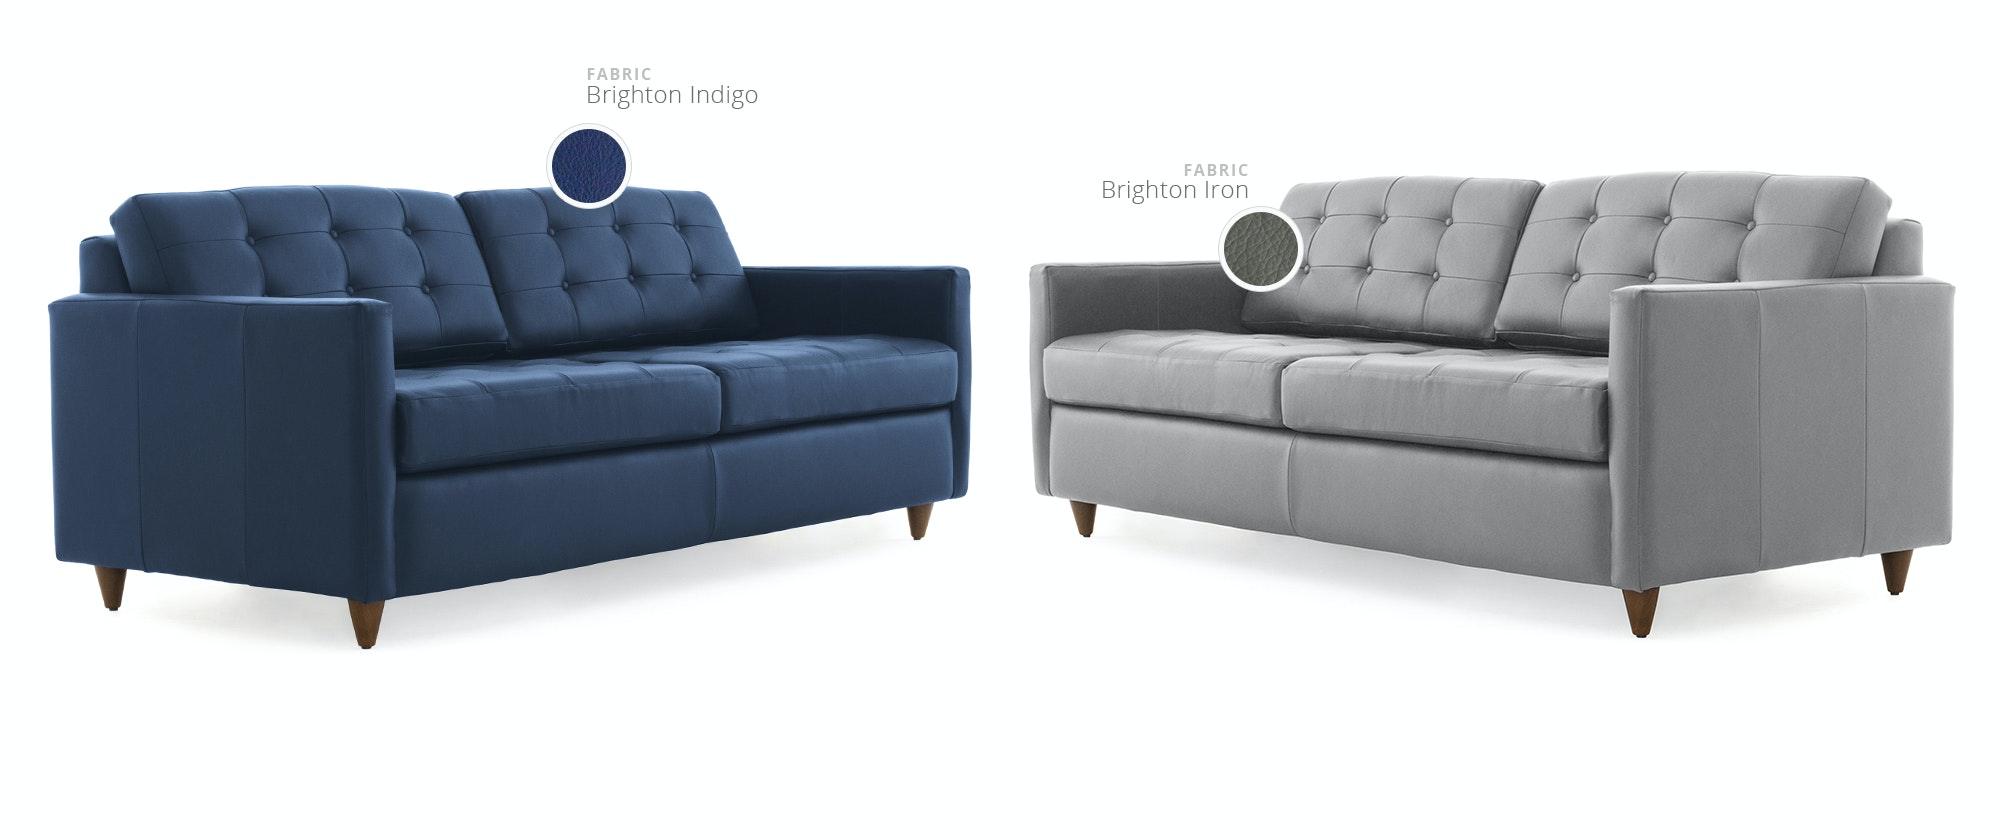 Sofa cama quito